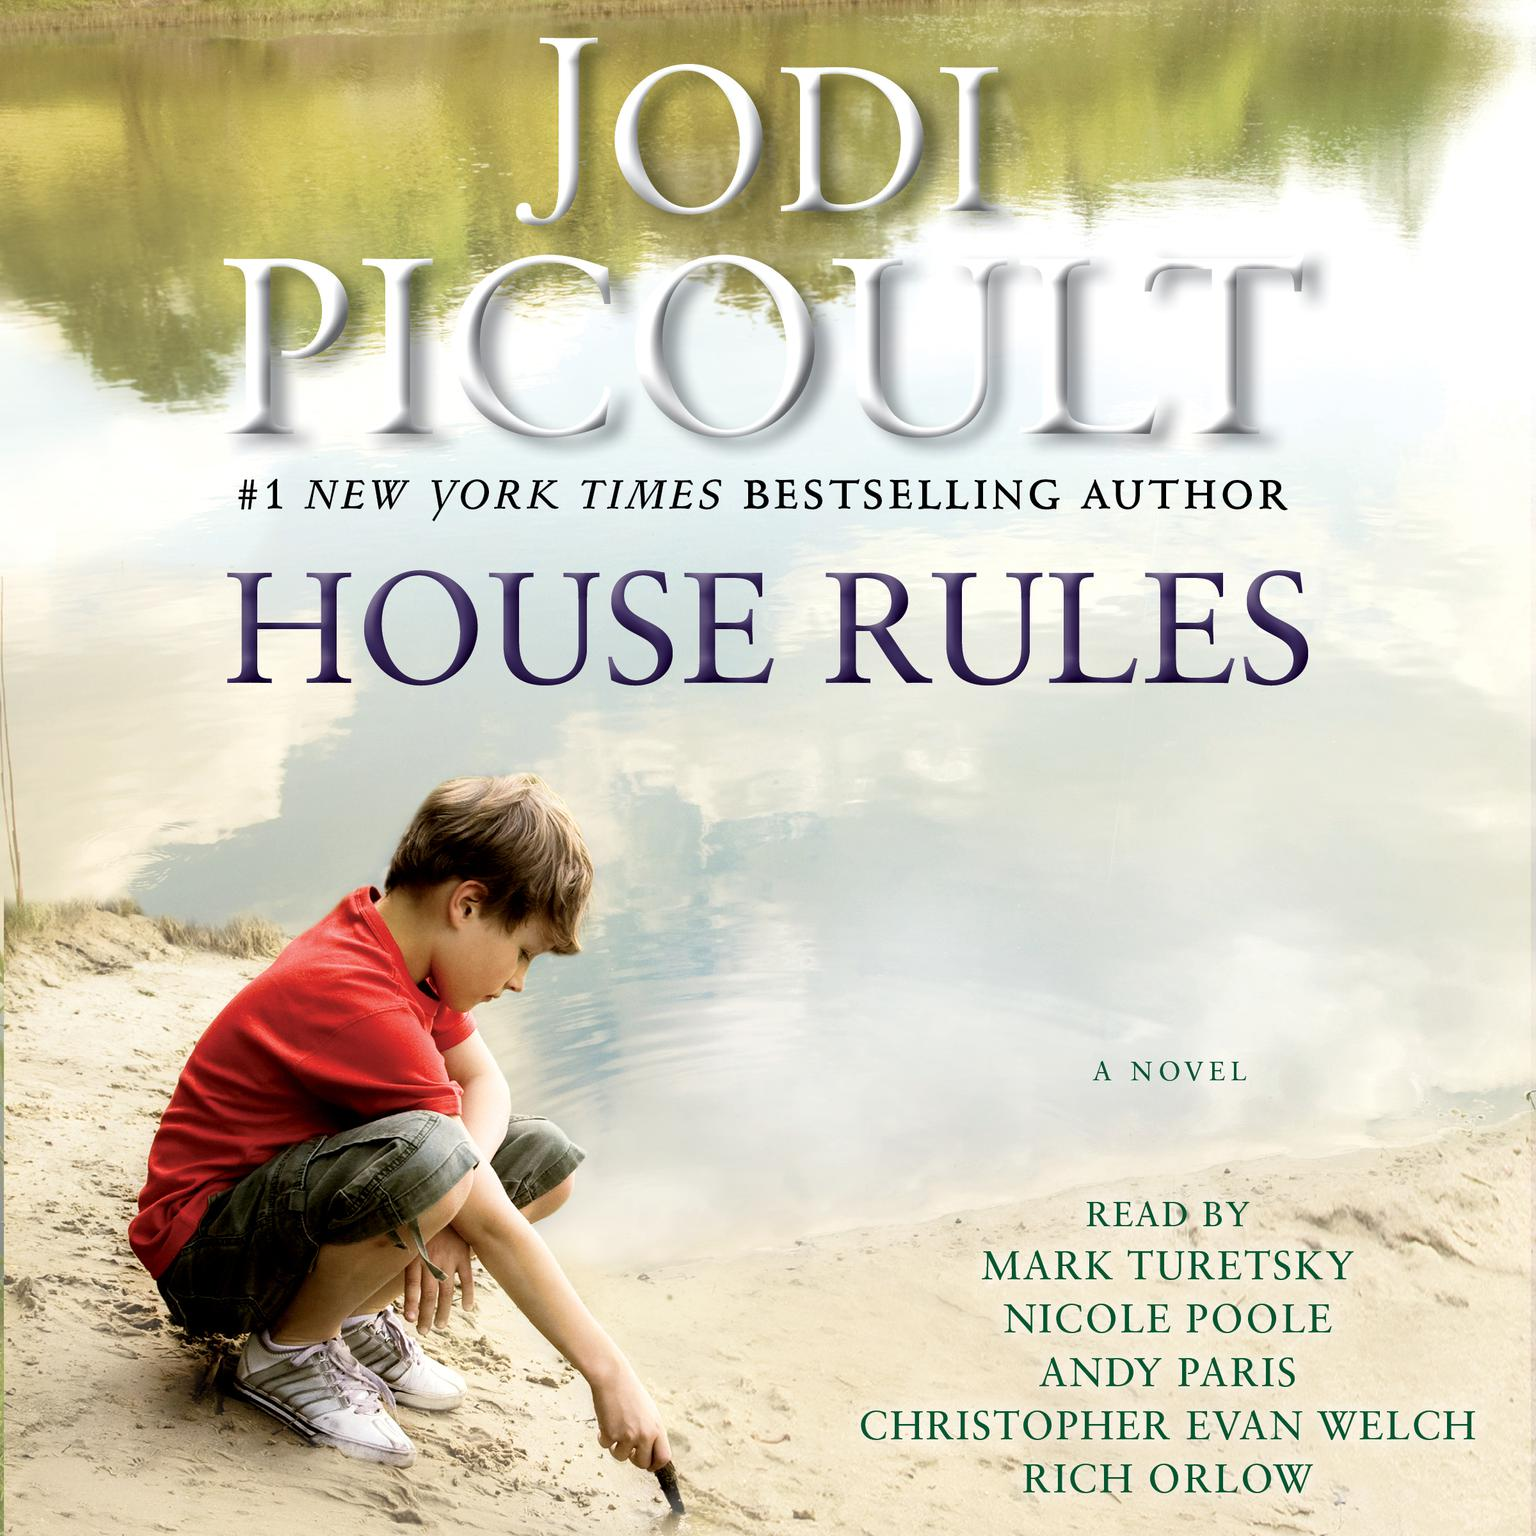 BOOK REVIEW: House Rules By Jodi Picoult